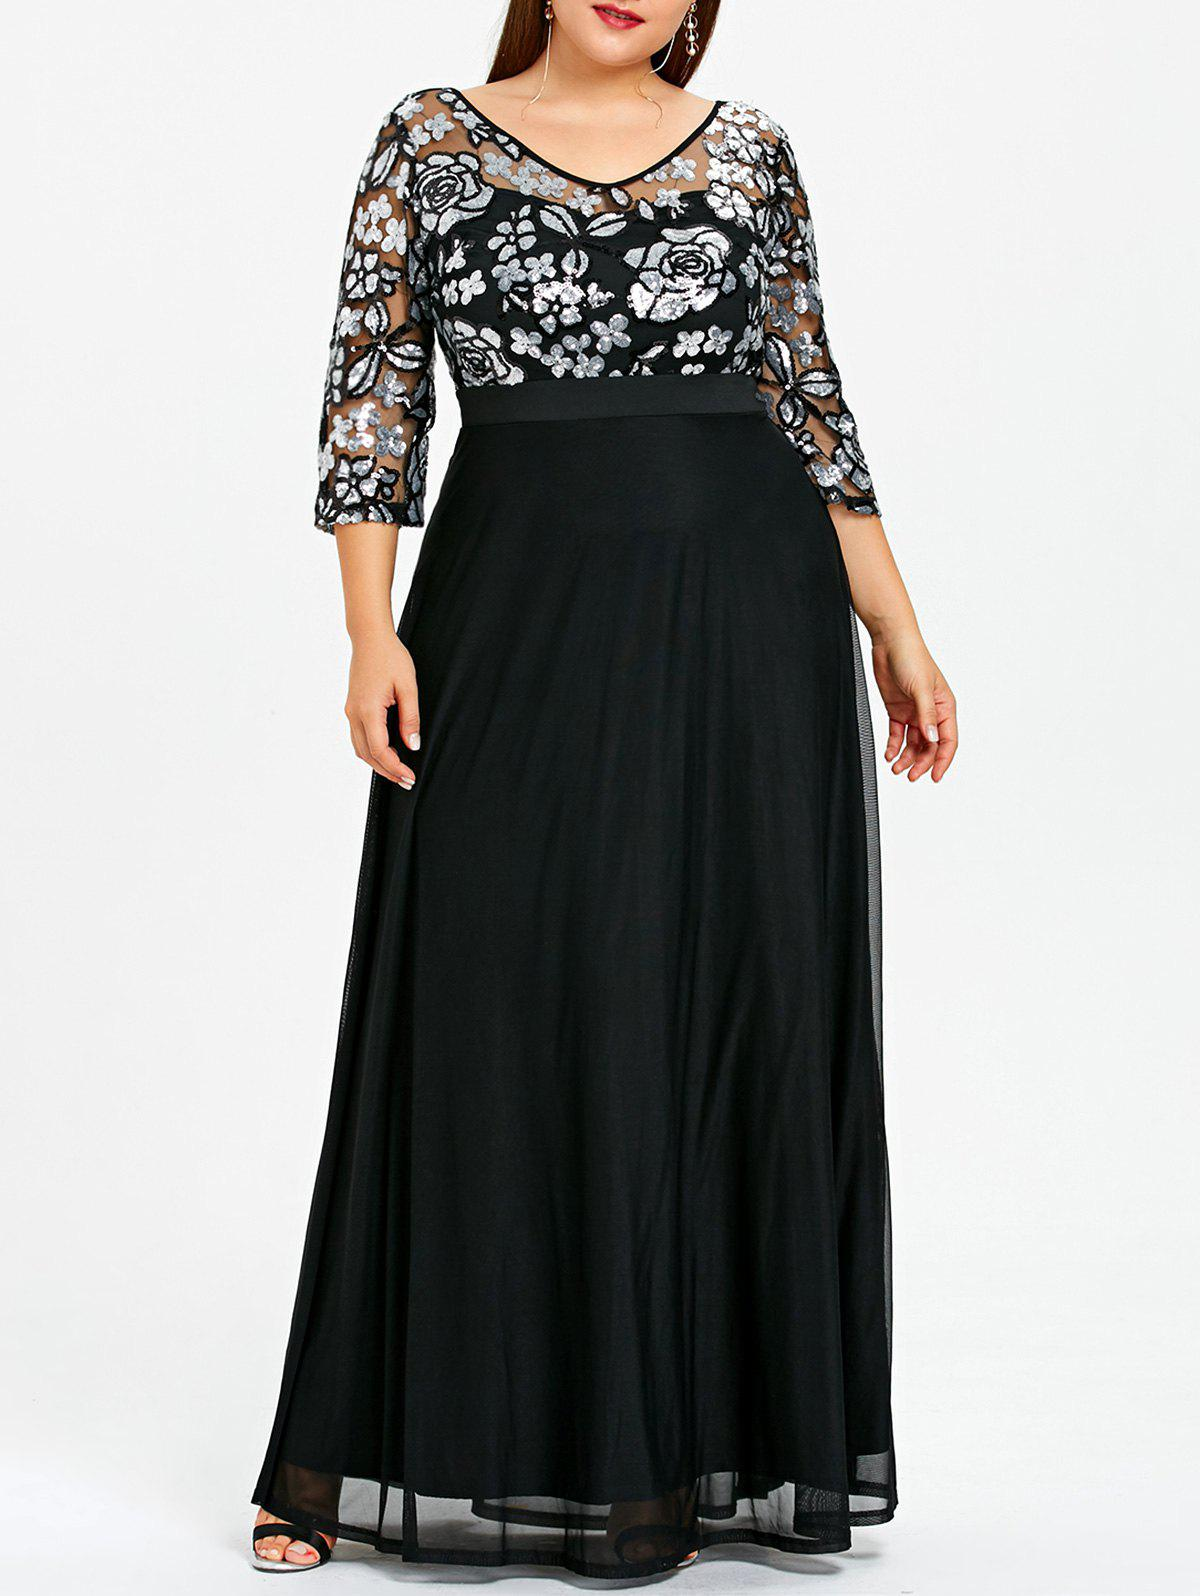 Plus Size Sequined Floral Sheer Prom Dress sheer lace plus size vintage party short prom dress